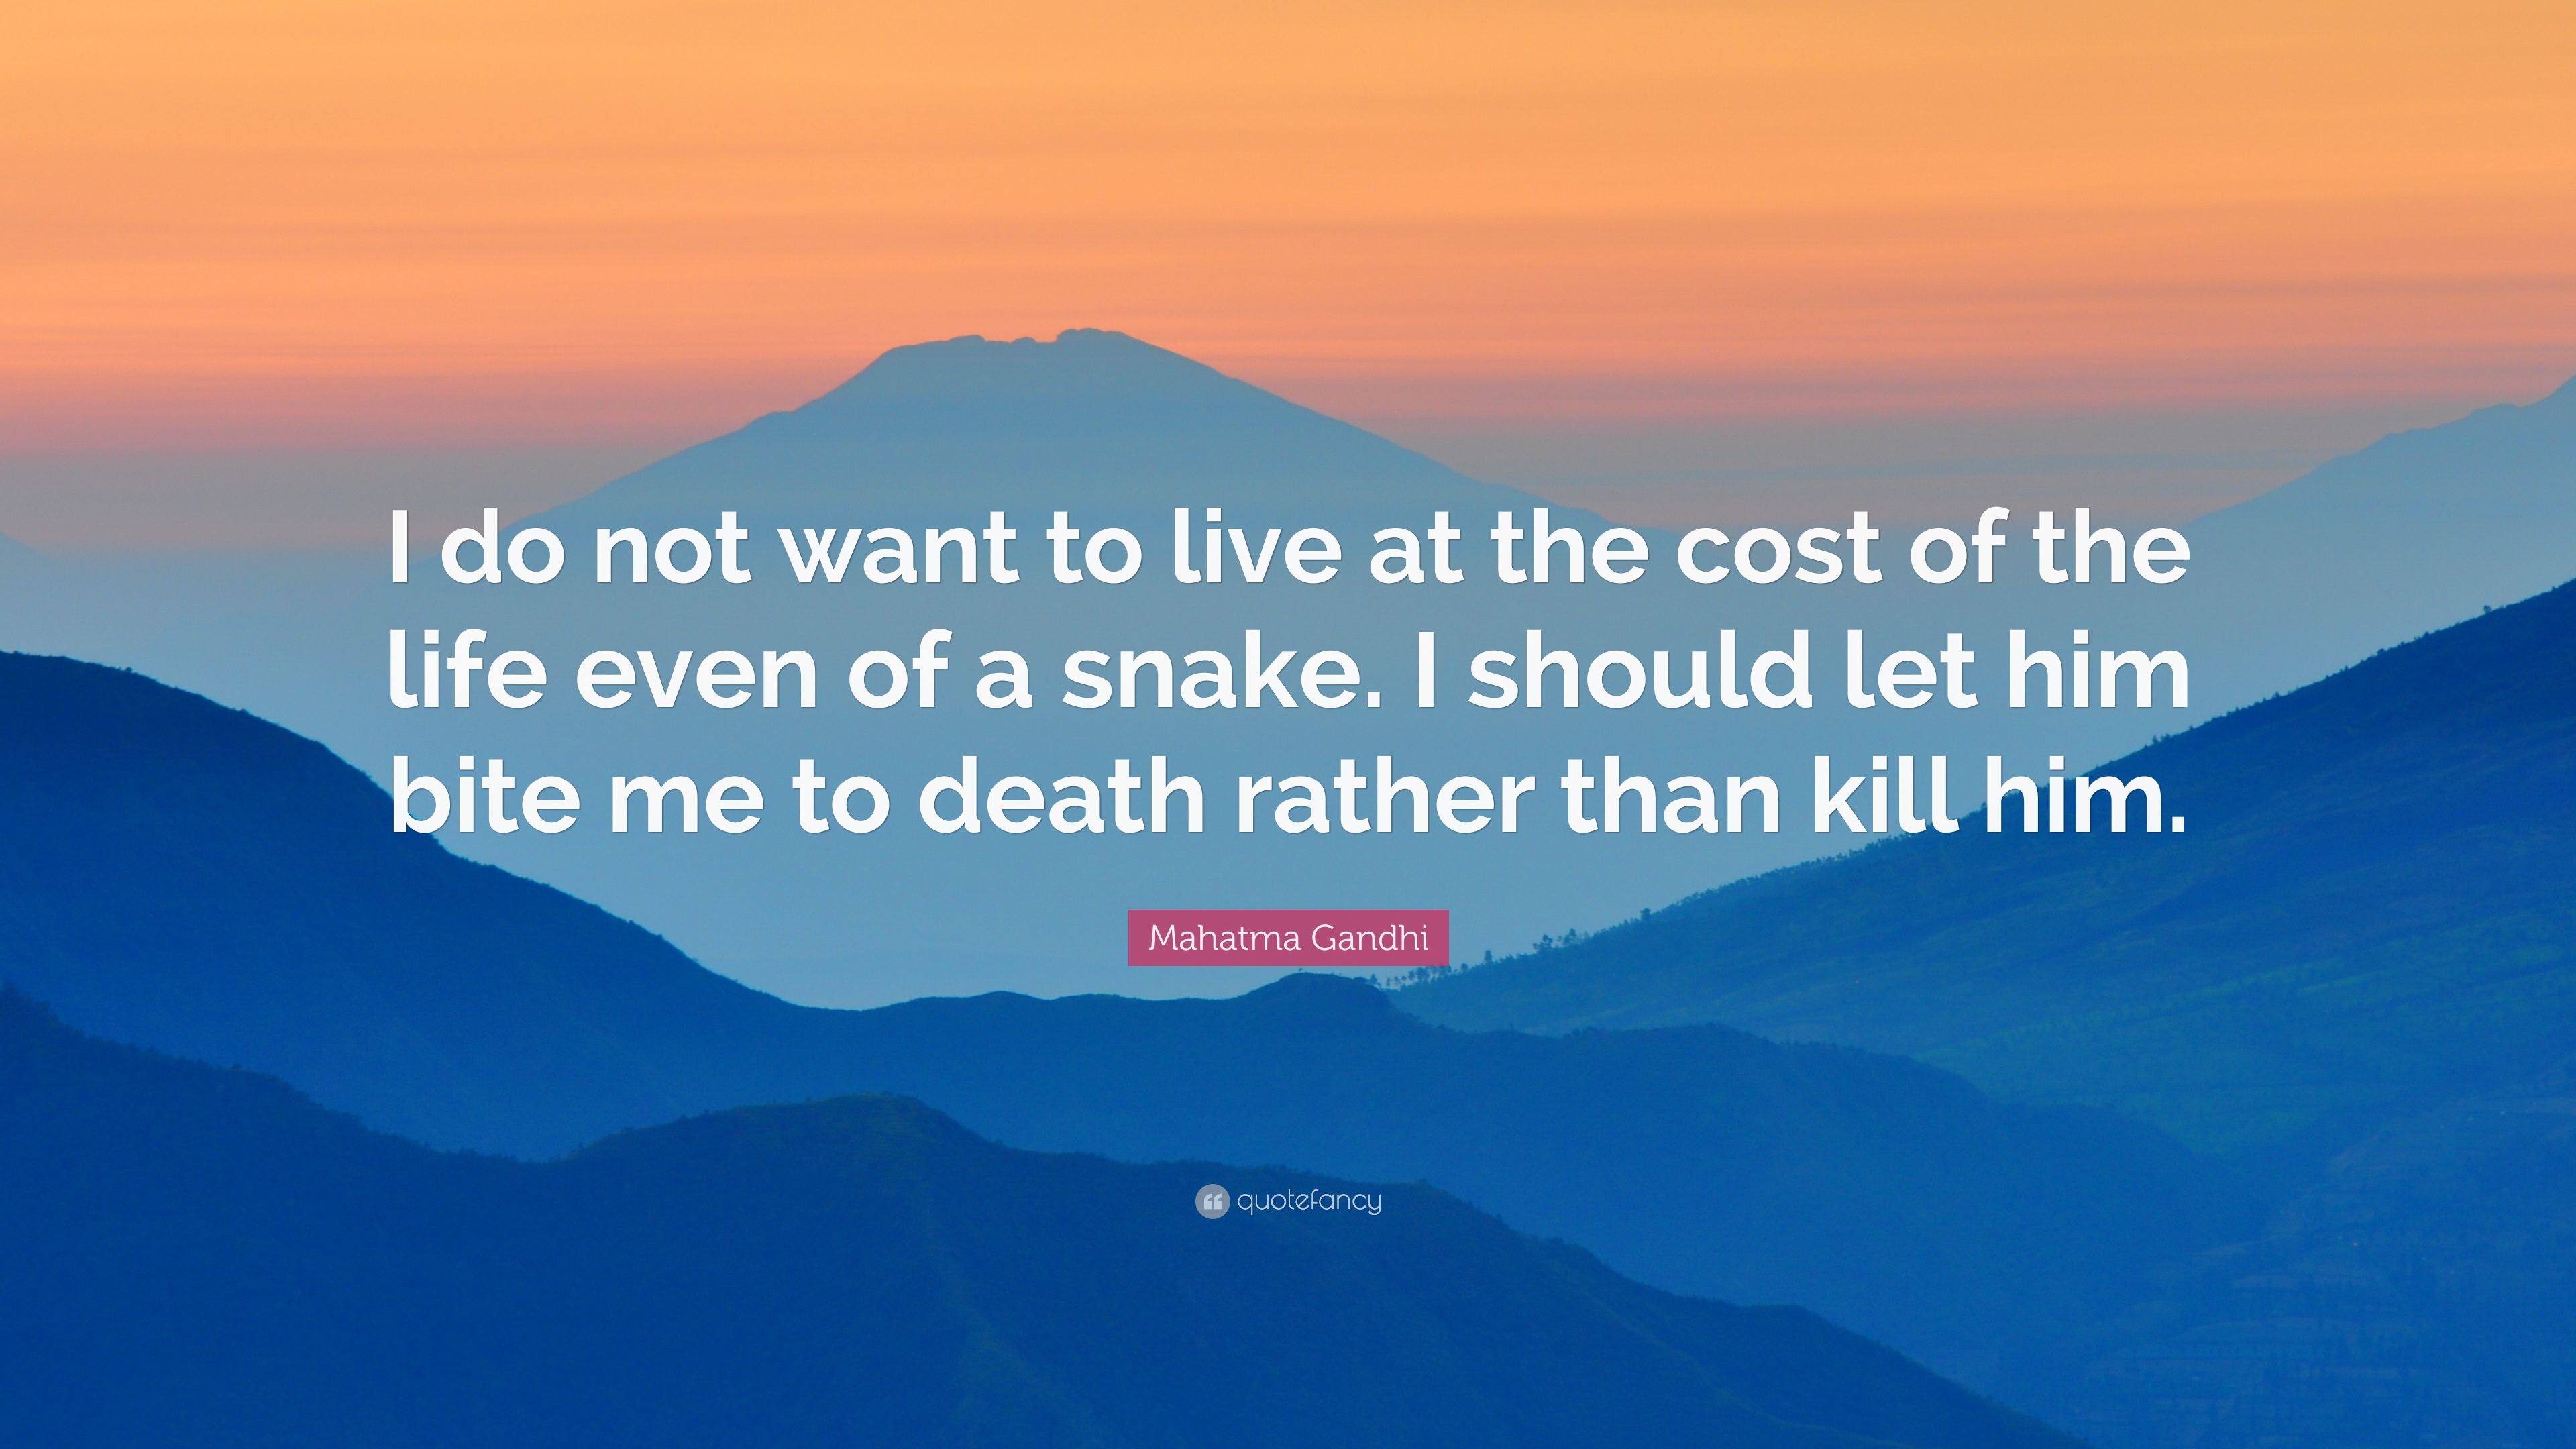 Mahatma Gandhi Quote I Do Not Want To Live At The Cost Of The Life